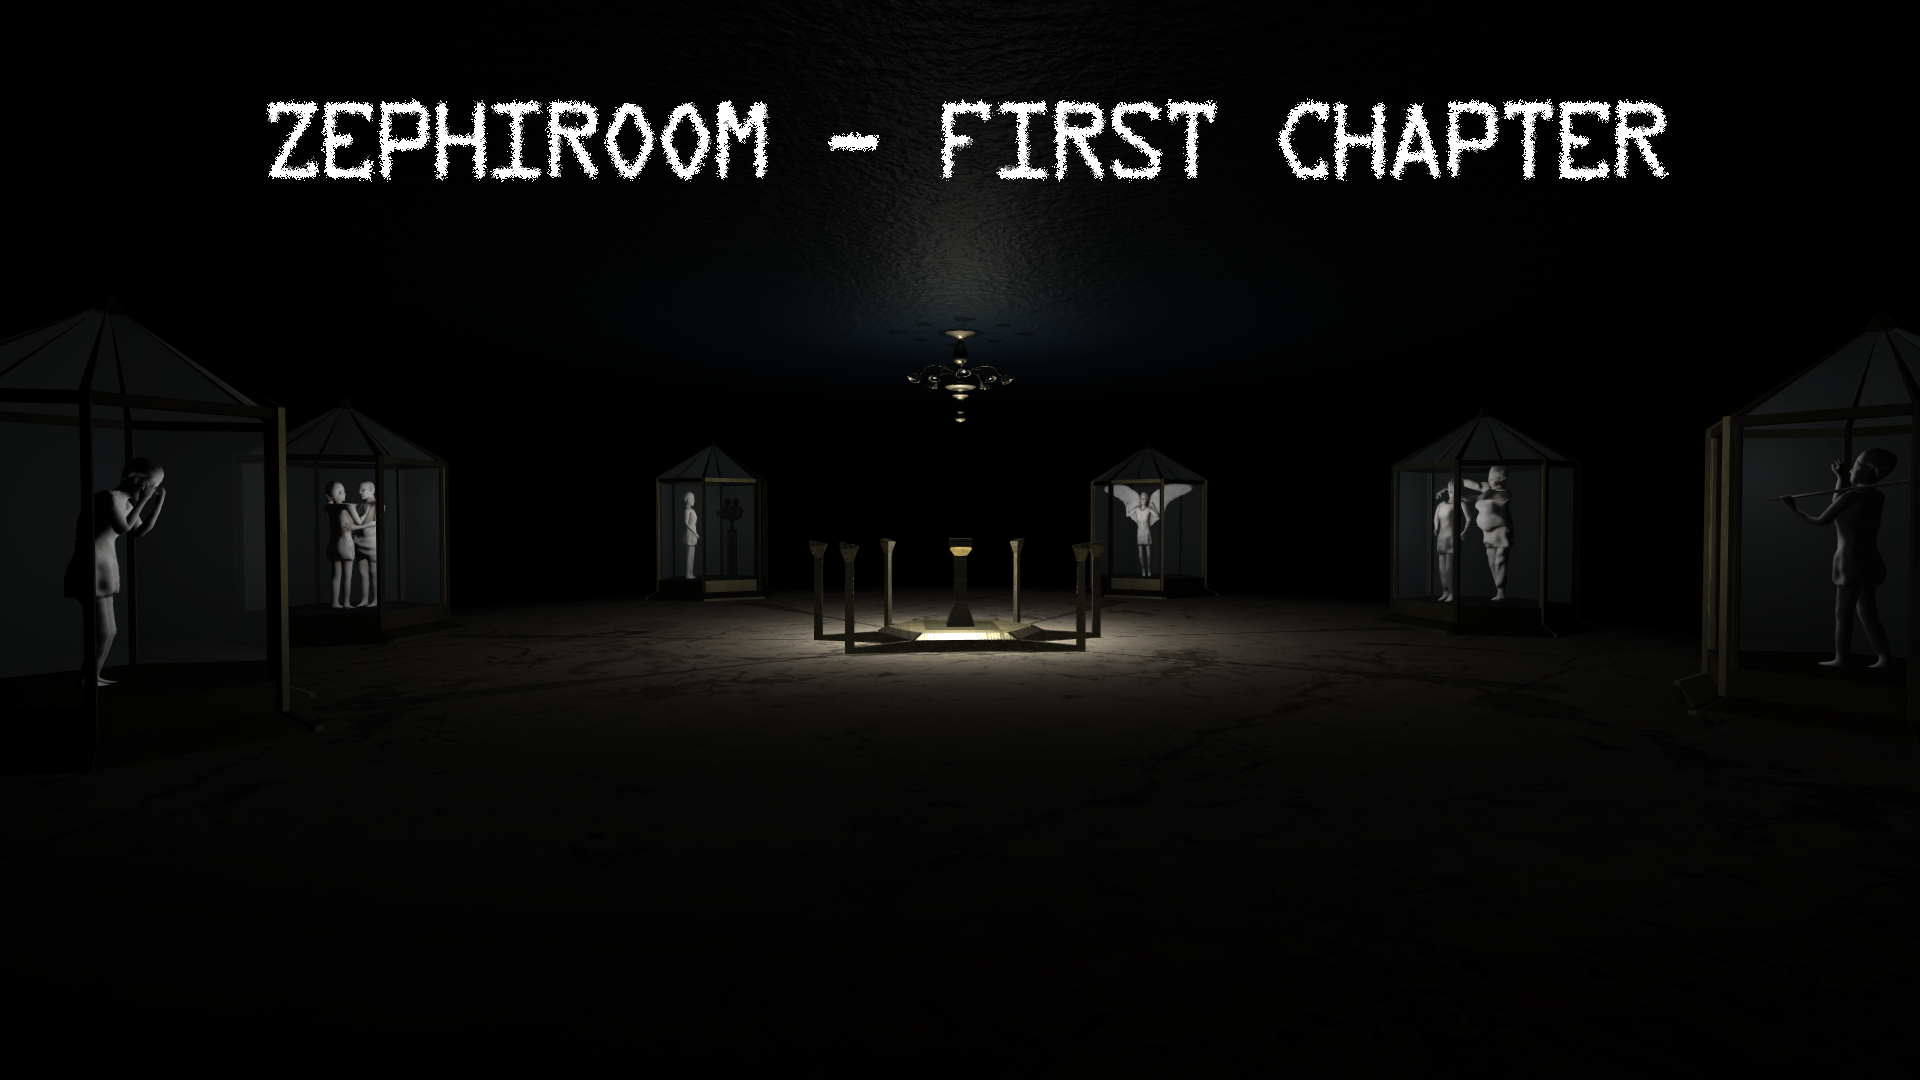 Zephiroom - First Chapter